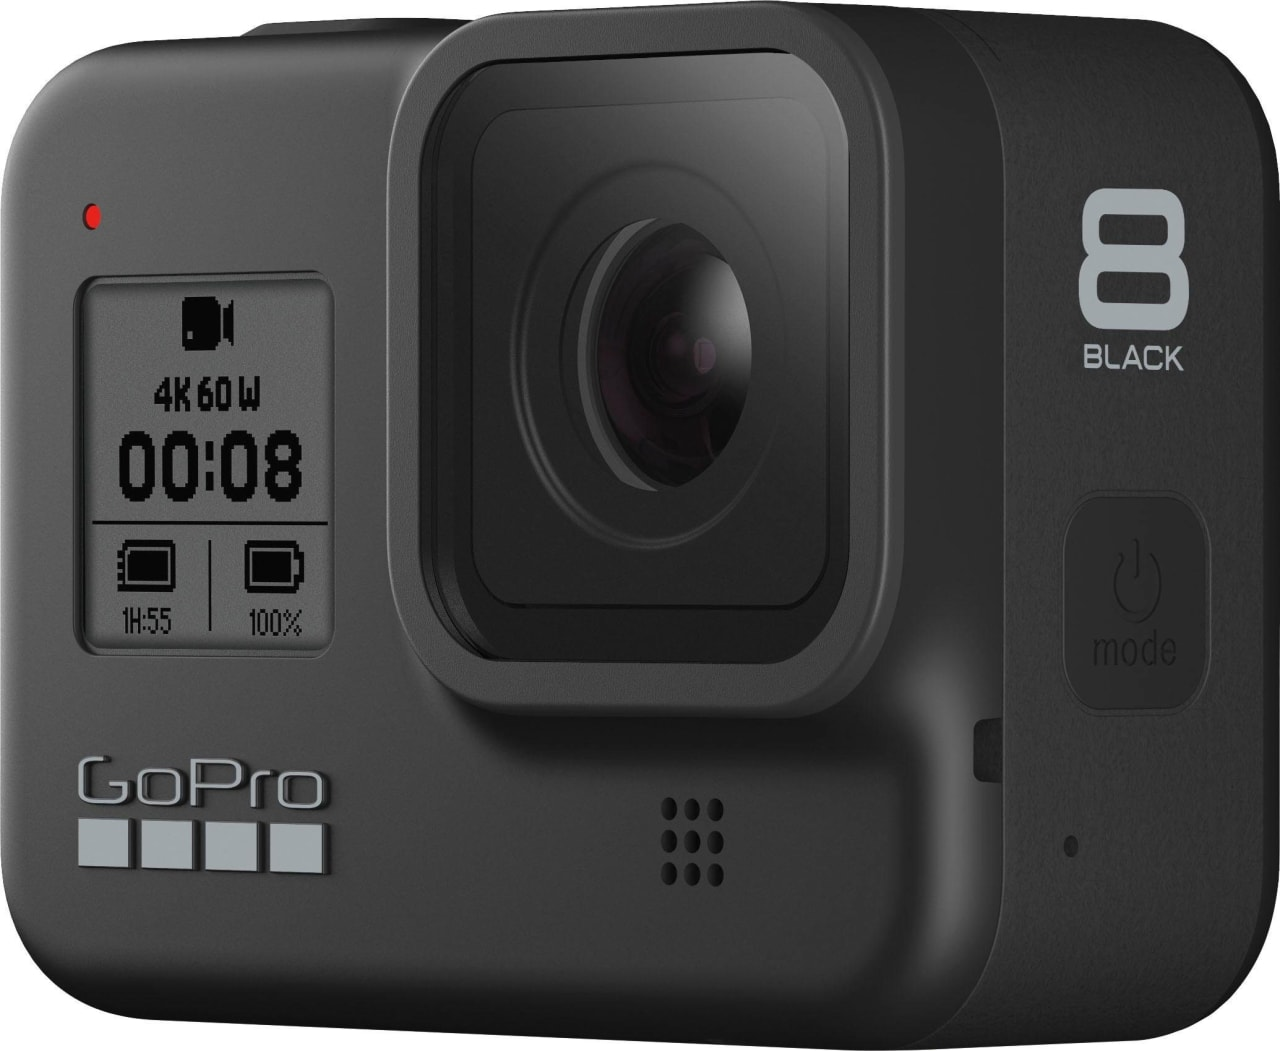 Black GoPro HERO8.2